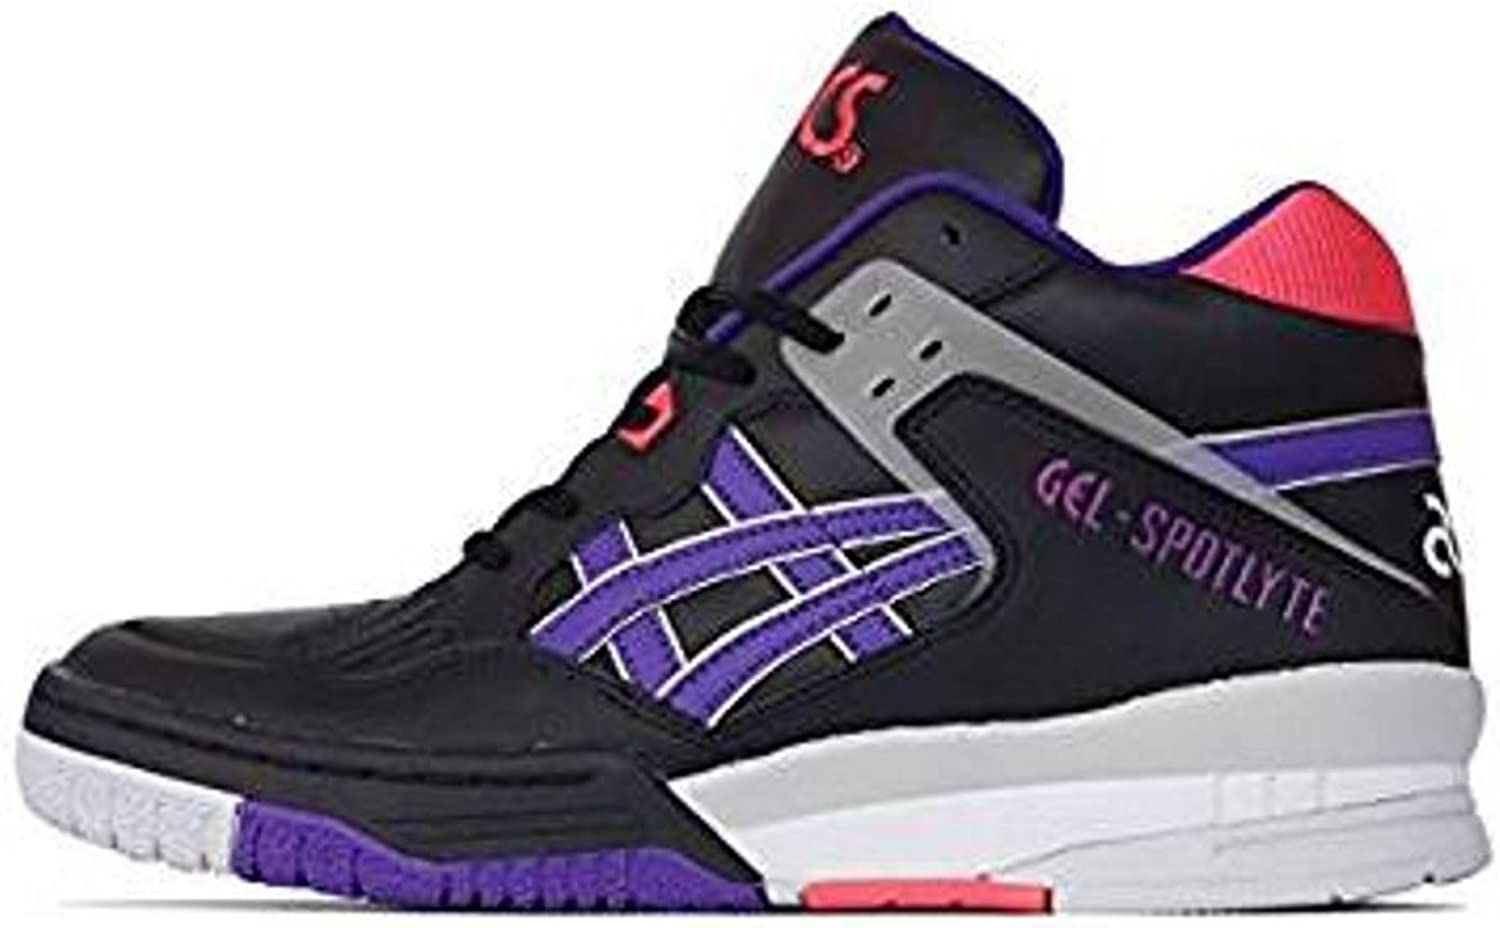 ASICS Gel Spotlyte Casual Trainers Sneakers H419L 9030